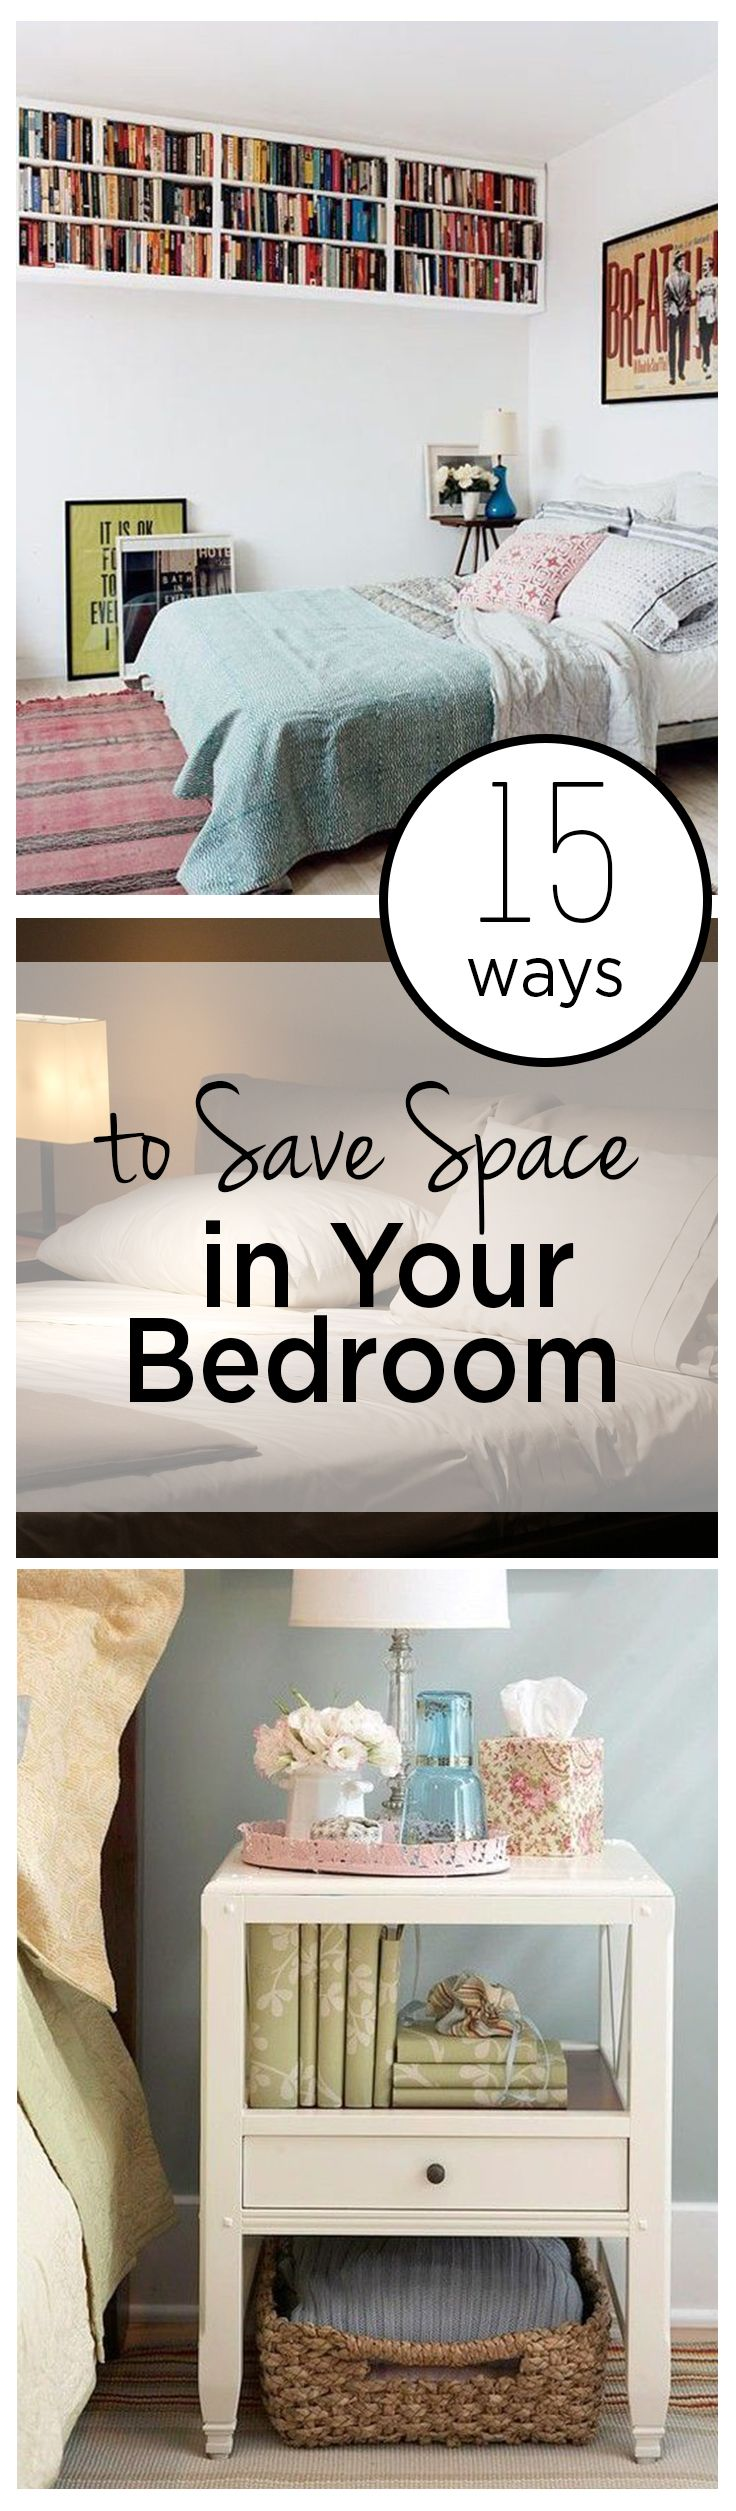 15 Ways to Save Space in Your Bedroom